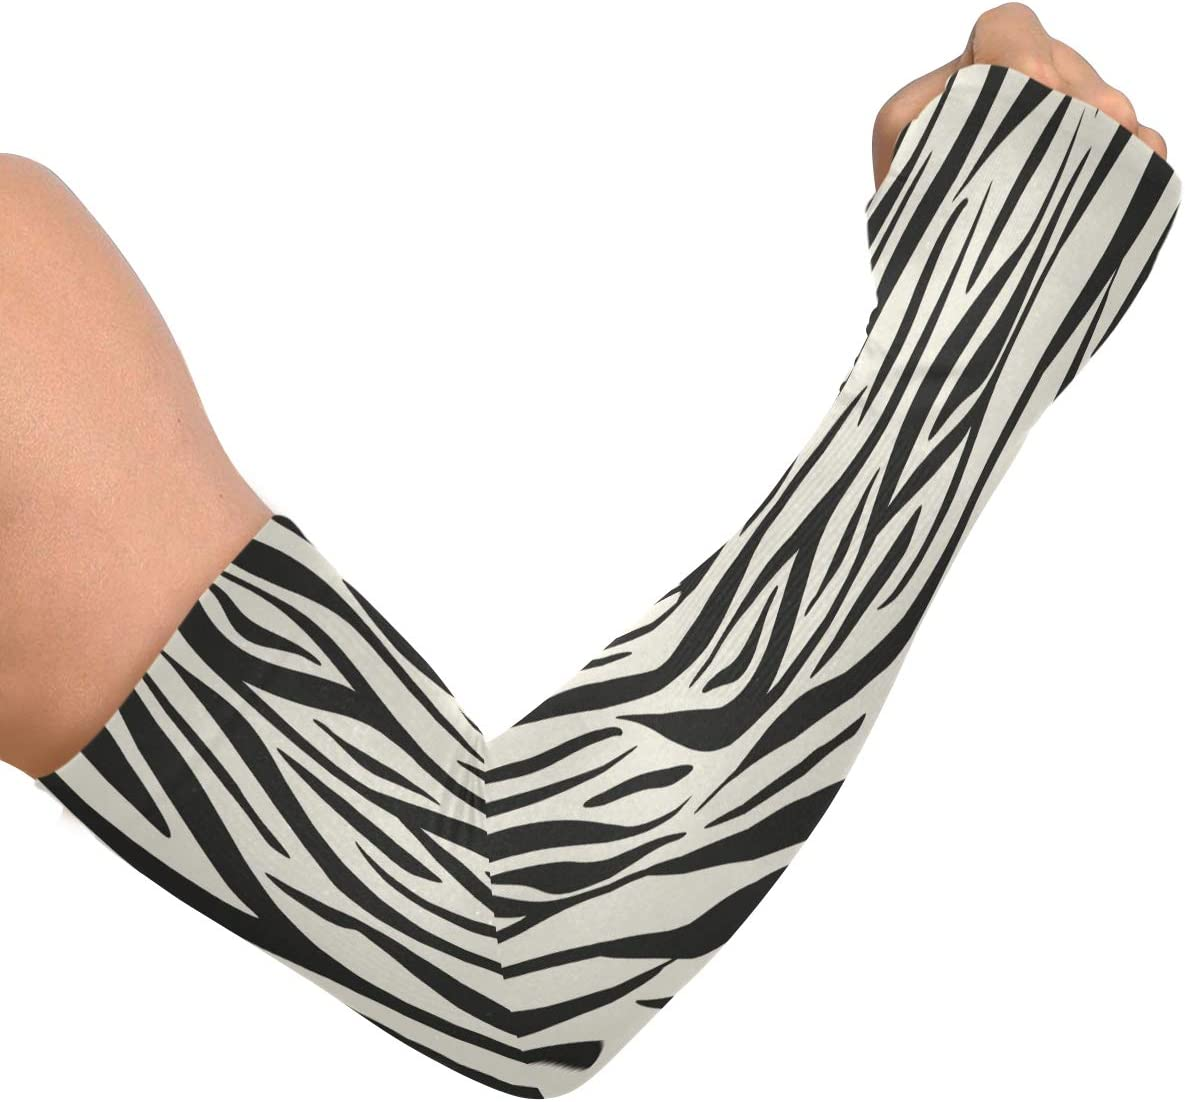 Uv Sun Protection Cooling Arm Sleeves Animal Print Zebra Special Compression Sleeves For Arms, Arm Tattoo Sleeves, Sleeves To Cover Arms For Men Women